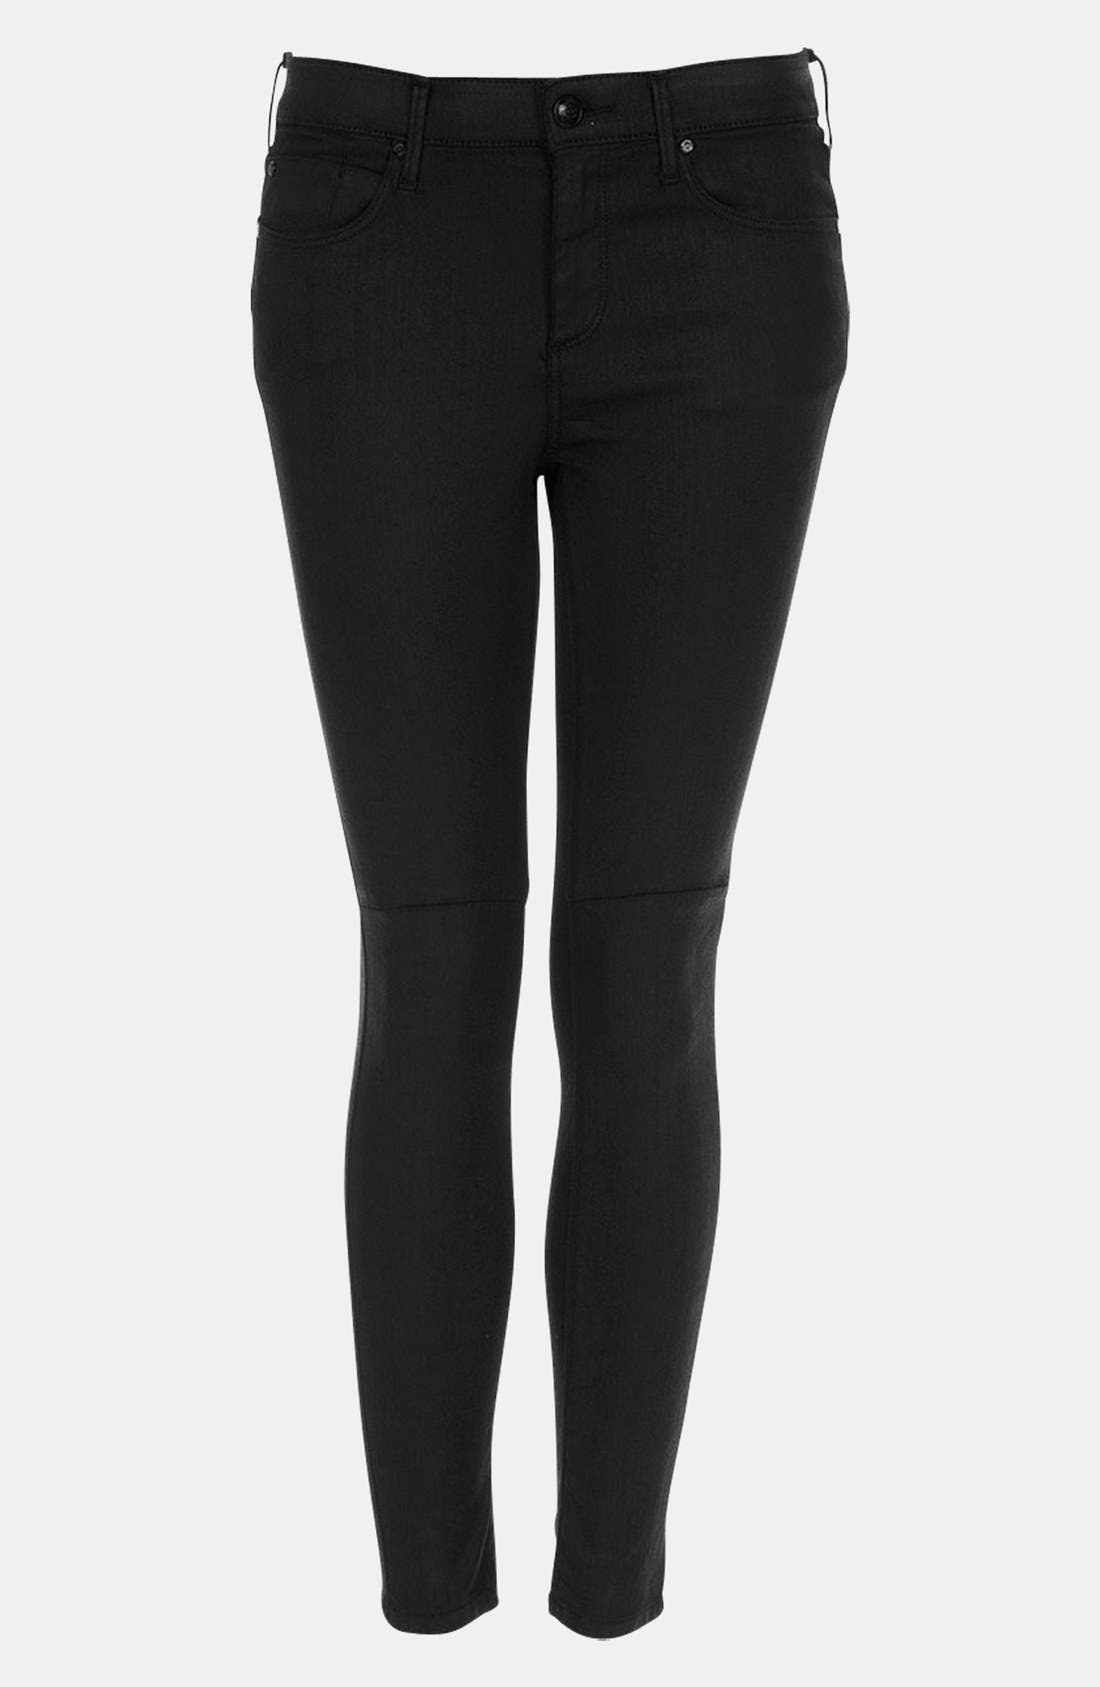 Alternate Image 1 Selected - Topshop Moto 'Leigh' Coated Skinny Jeans